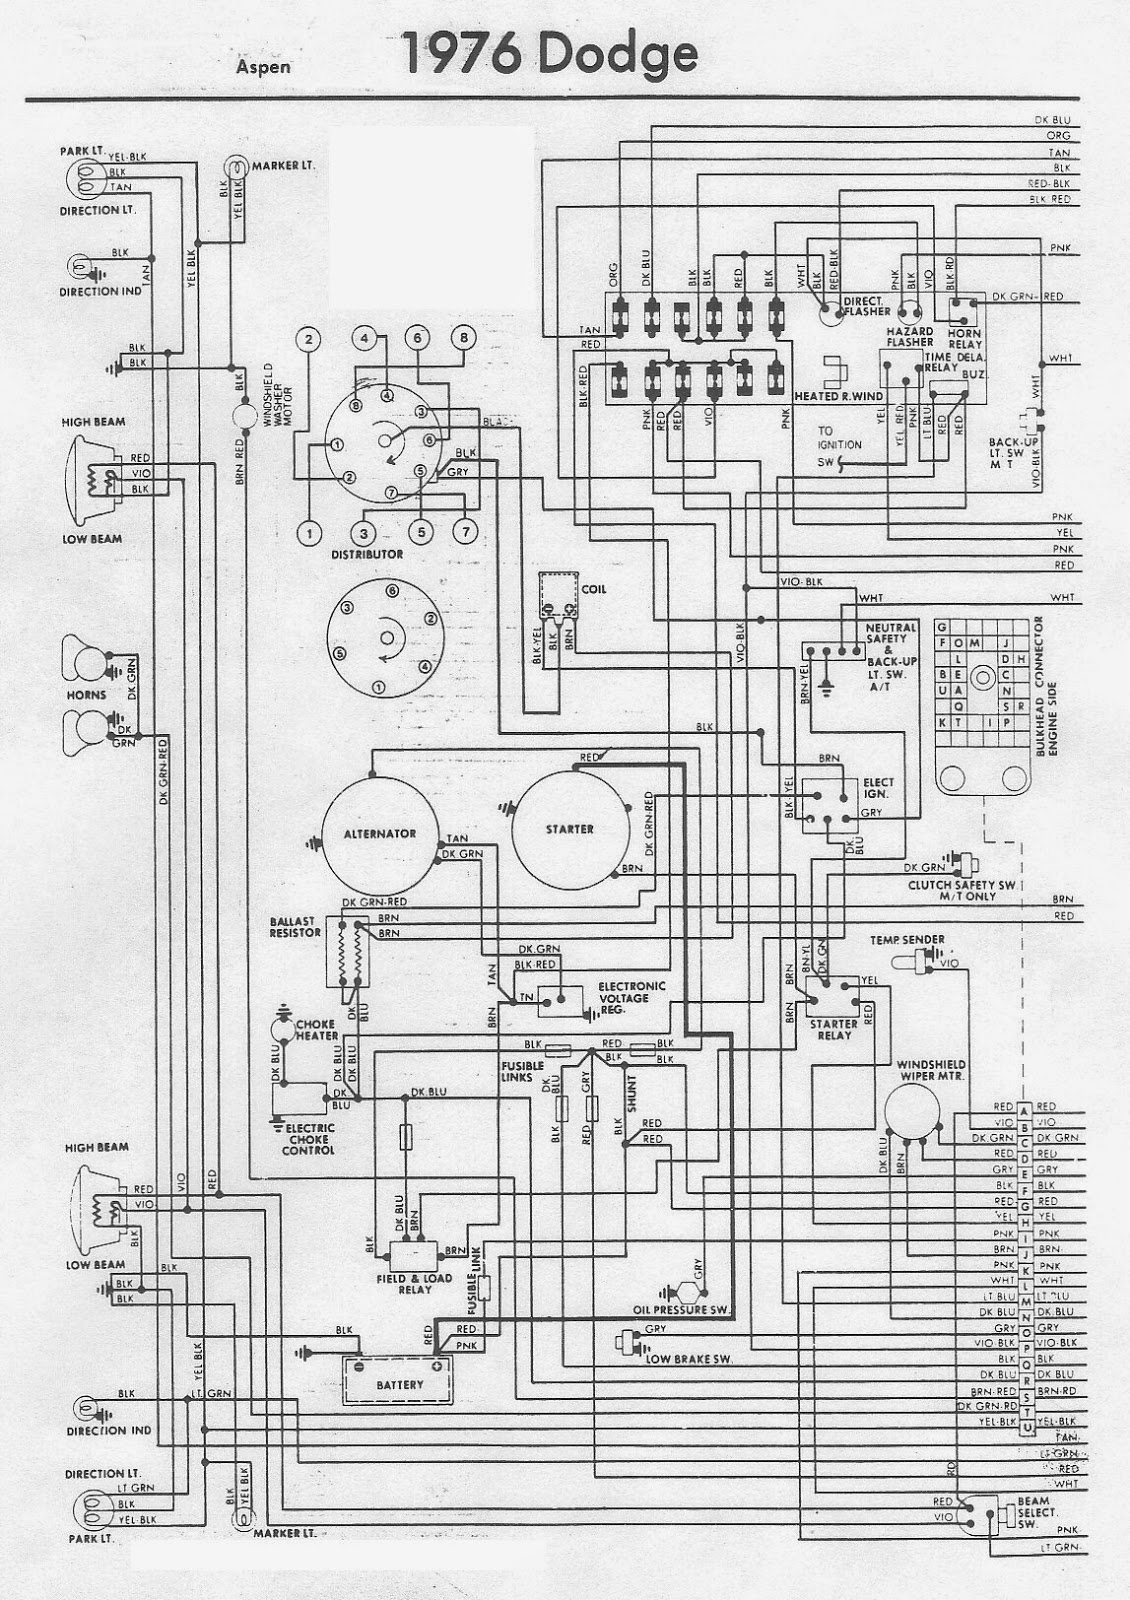 small resolution of wiring diagram electrical system circuit 1976 dodge aspen user guide 1979 dodge aspen wiring diagram 1979 dodge aspen wiring diagram